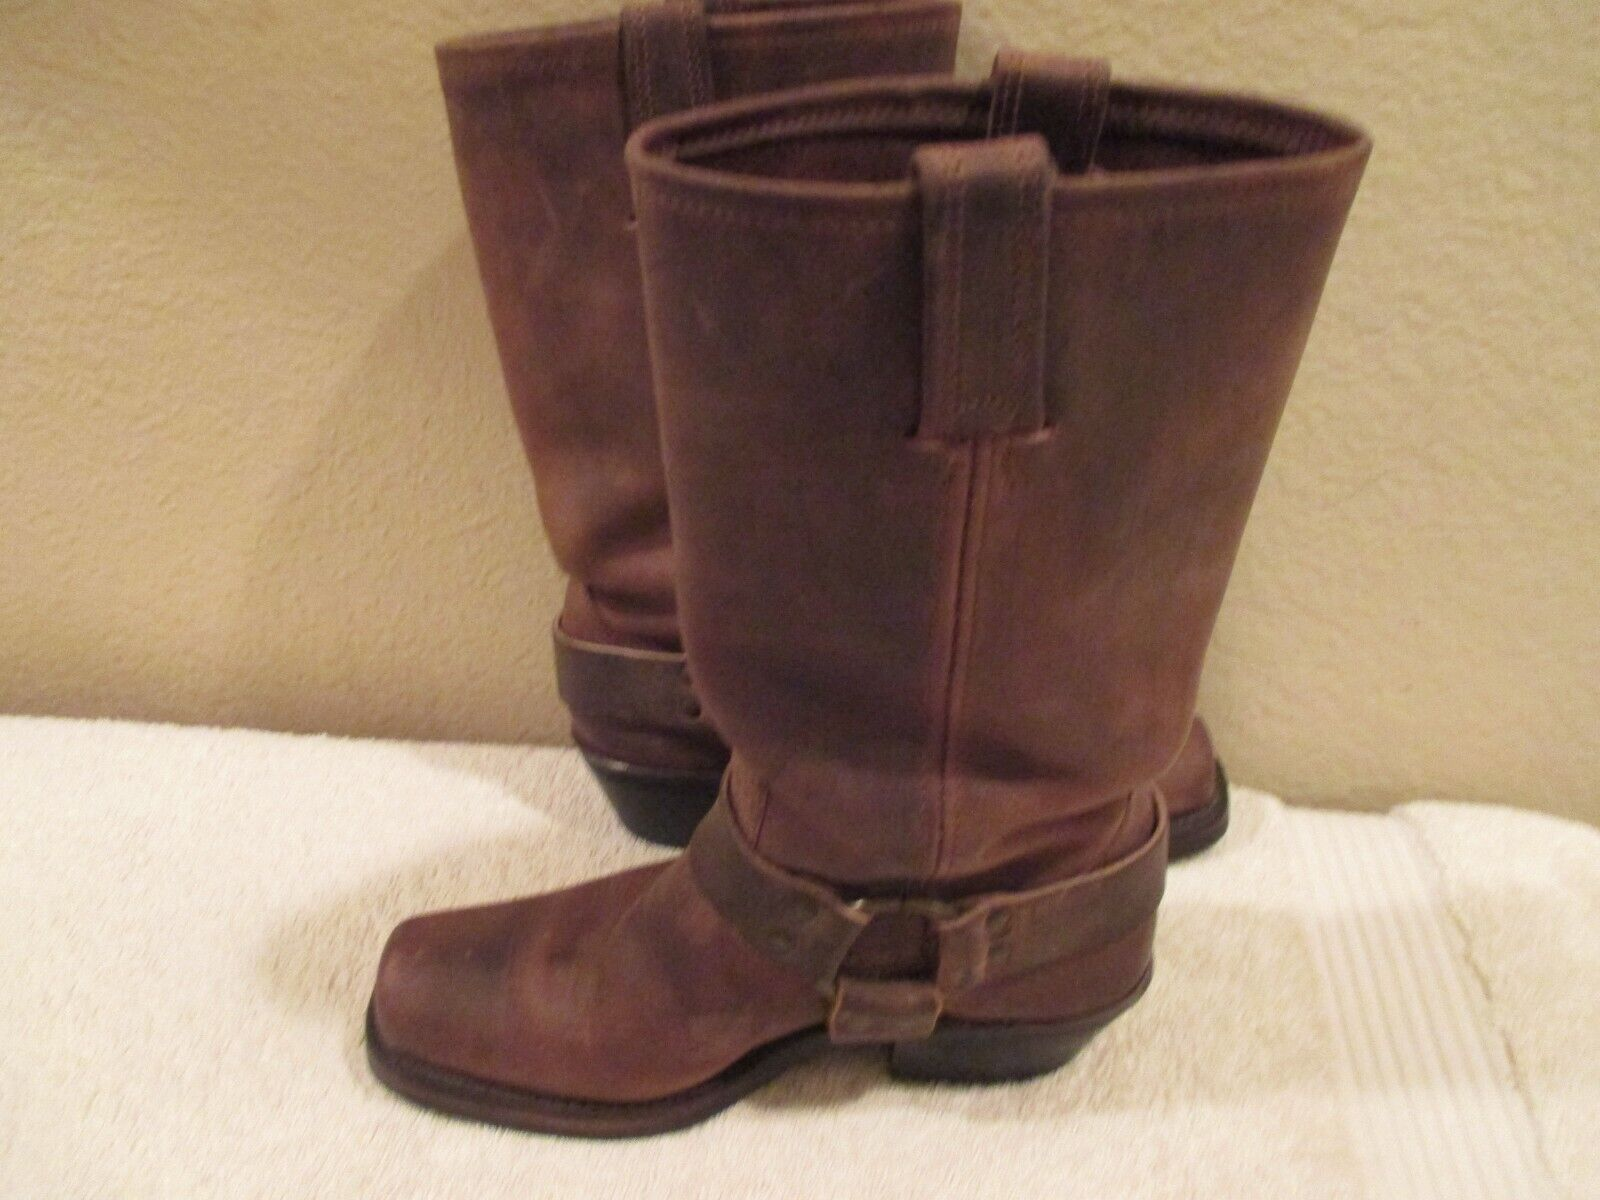 Frye 77300 Motorcycle Brown Harness Boots  made in USA SIZE 6.5 M